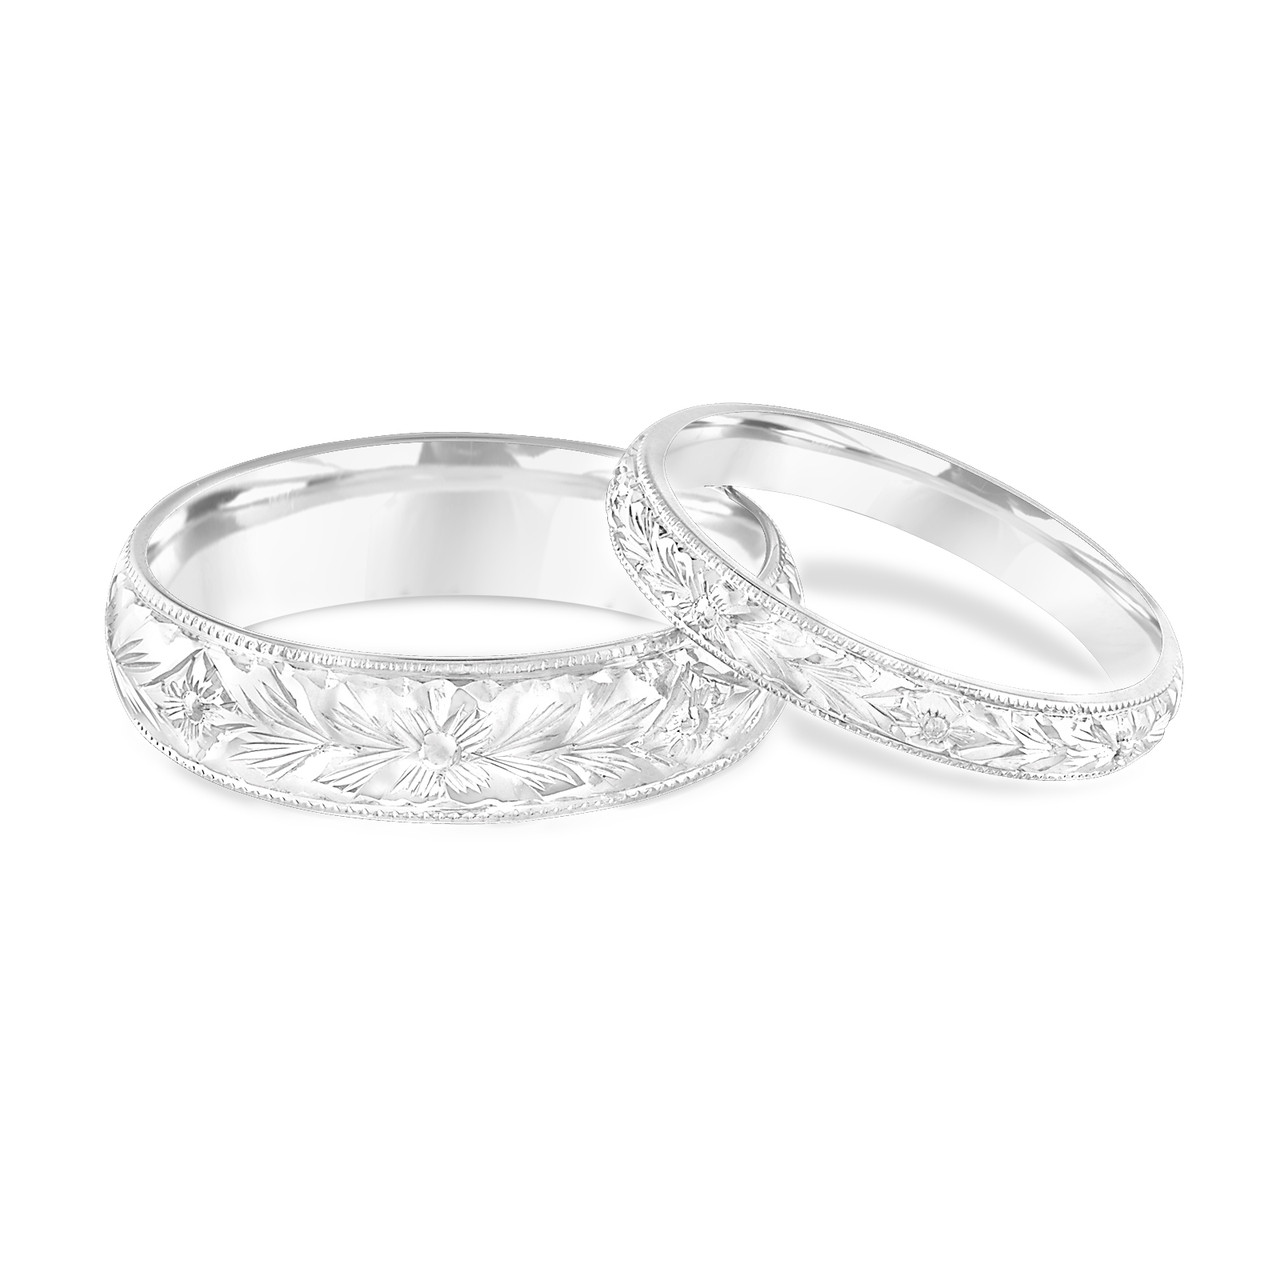 wedding rings for couples his and hers wedding bands engraved matching wedding 1027